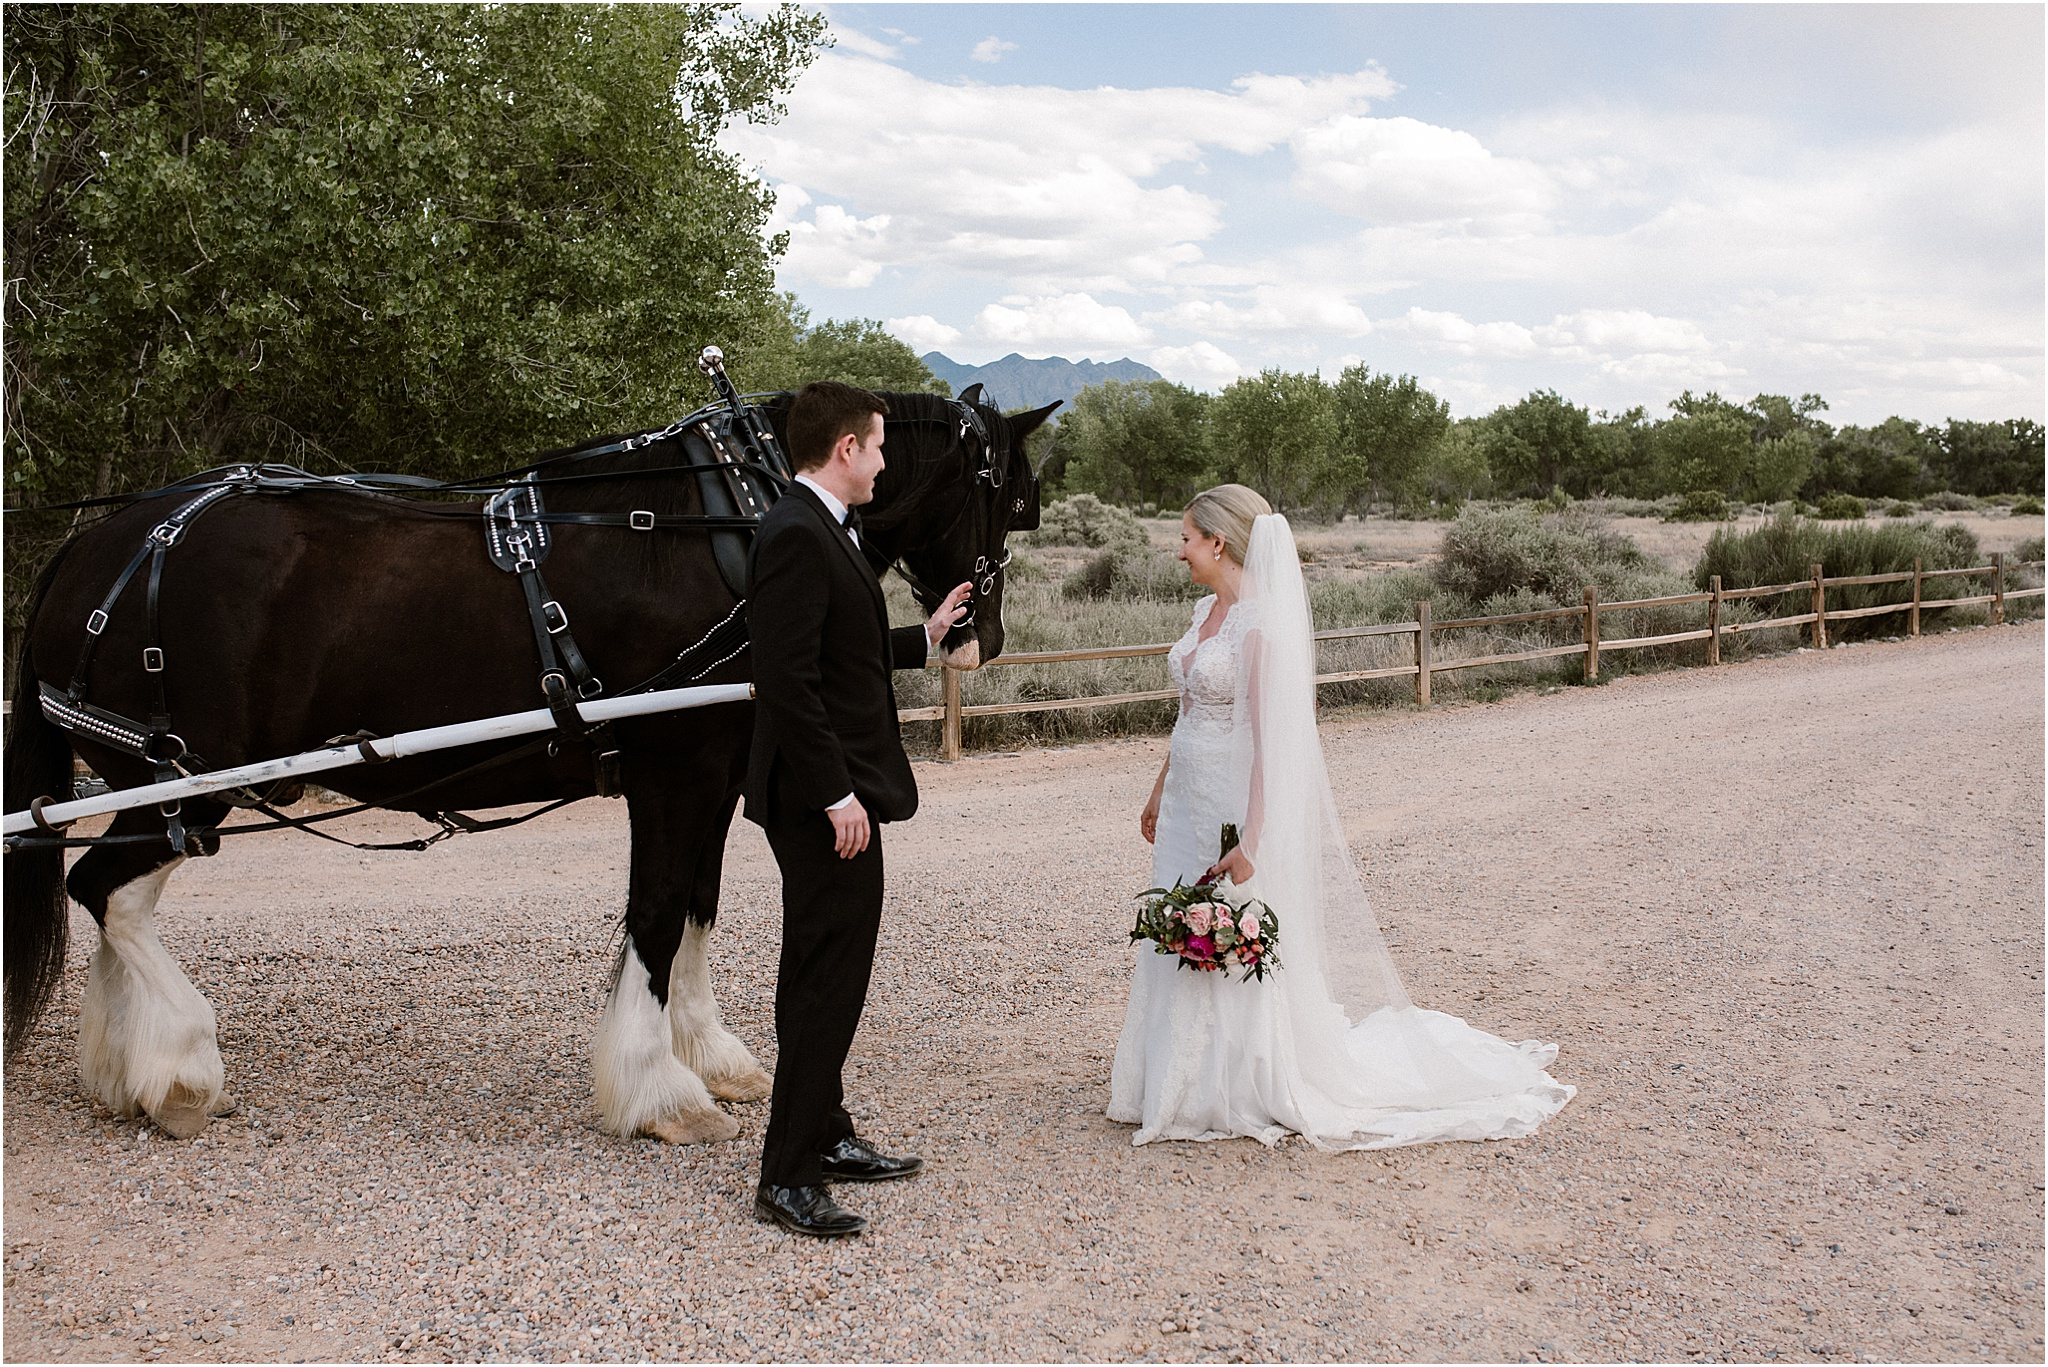 JENNA_JEROME_BLUE ROSE PHOTOGRAPHY_ABQ WEDDING_37